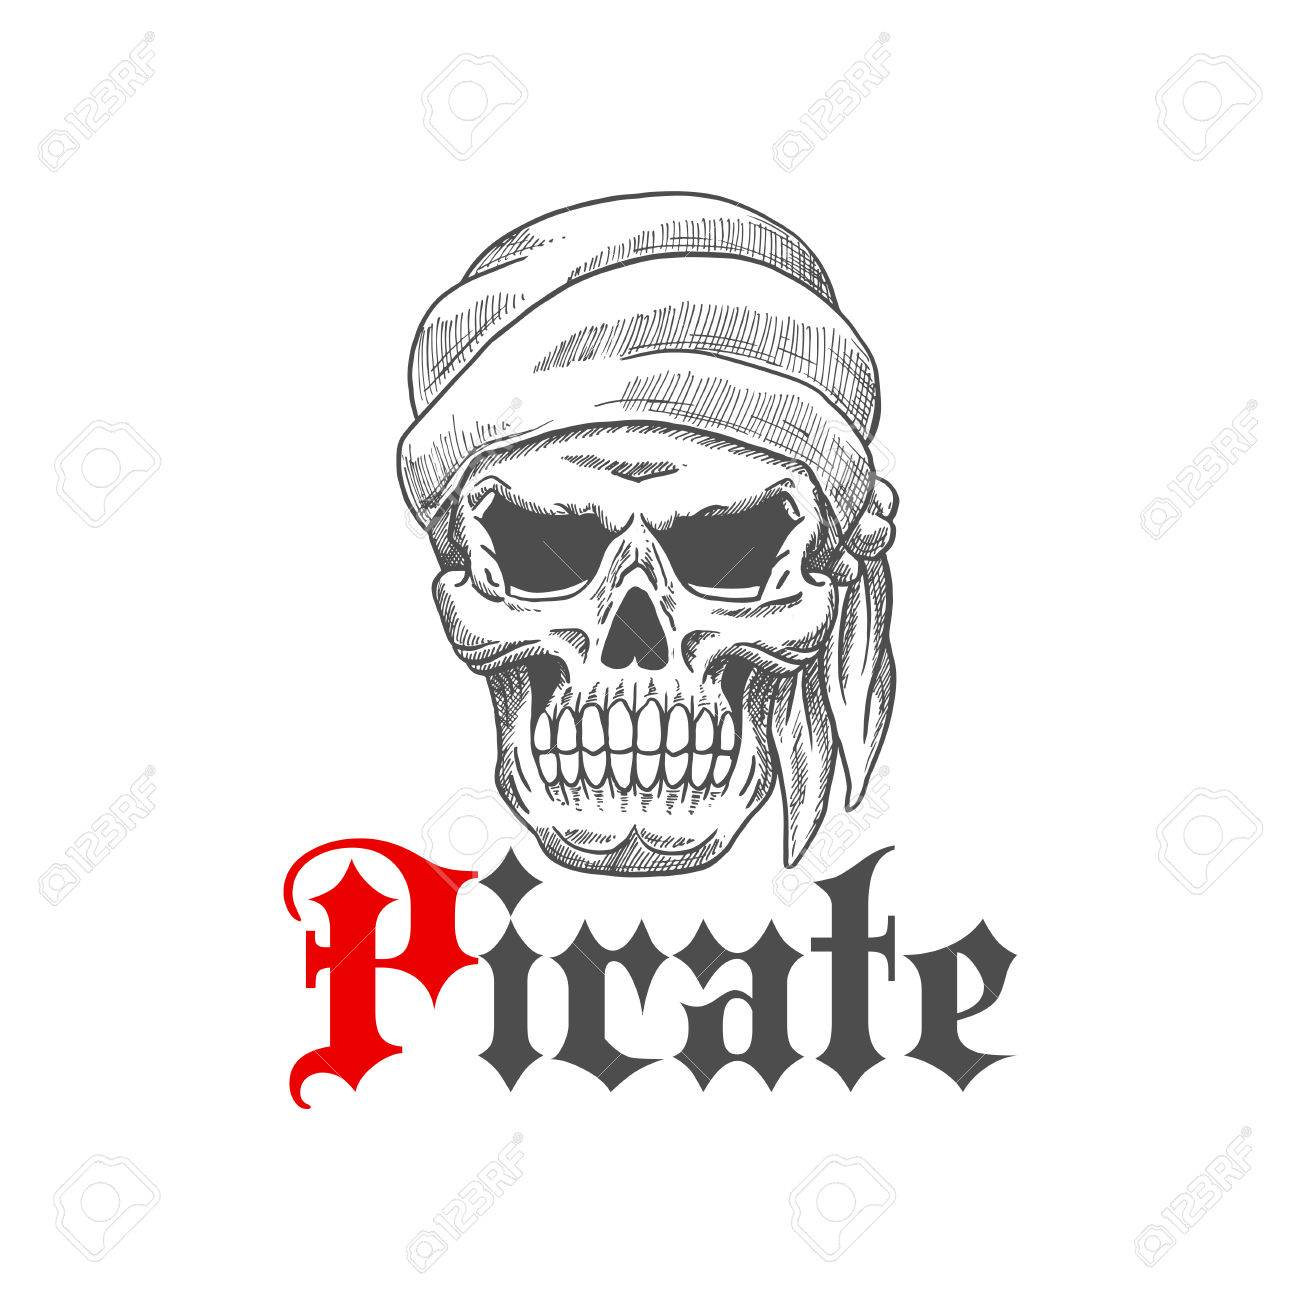 Dead pirate tattoo symbol with sketched evil human skull wearing dead pirate tattoo symbol with sketched evil human skull wearing bandana with scary empty eye sockets buycottarizona Images